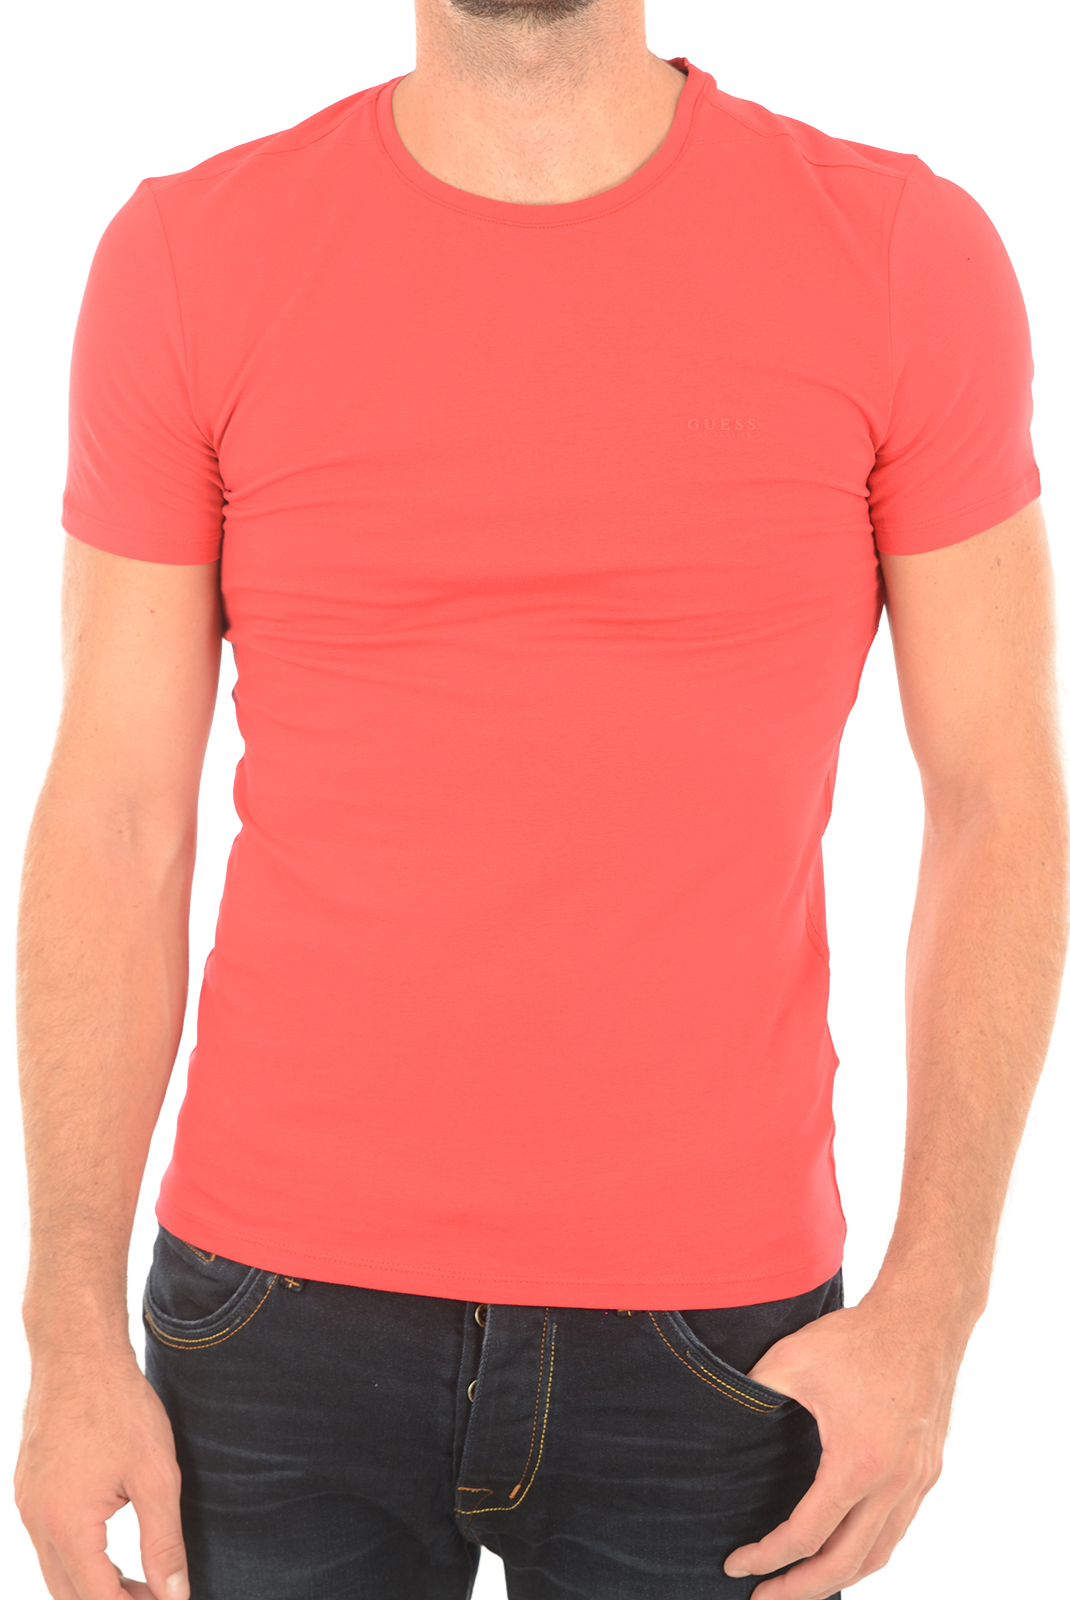 Tee-shirts  Guess jeans M73I56 J1300 C502 ROUGE